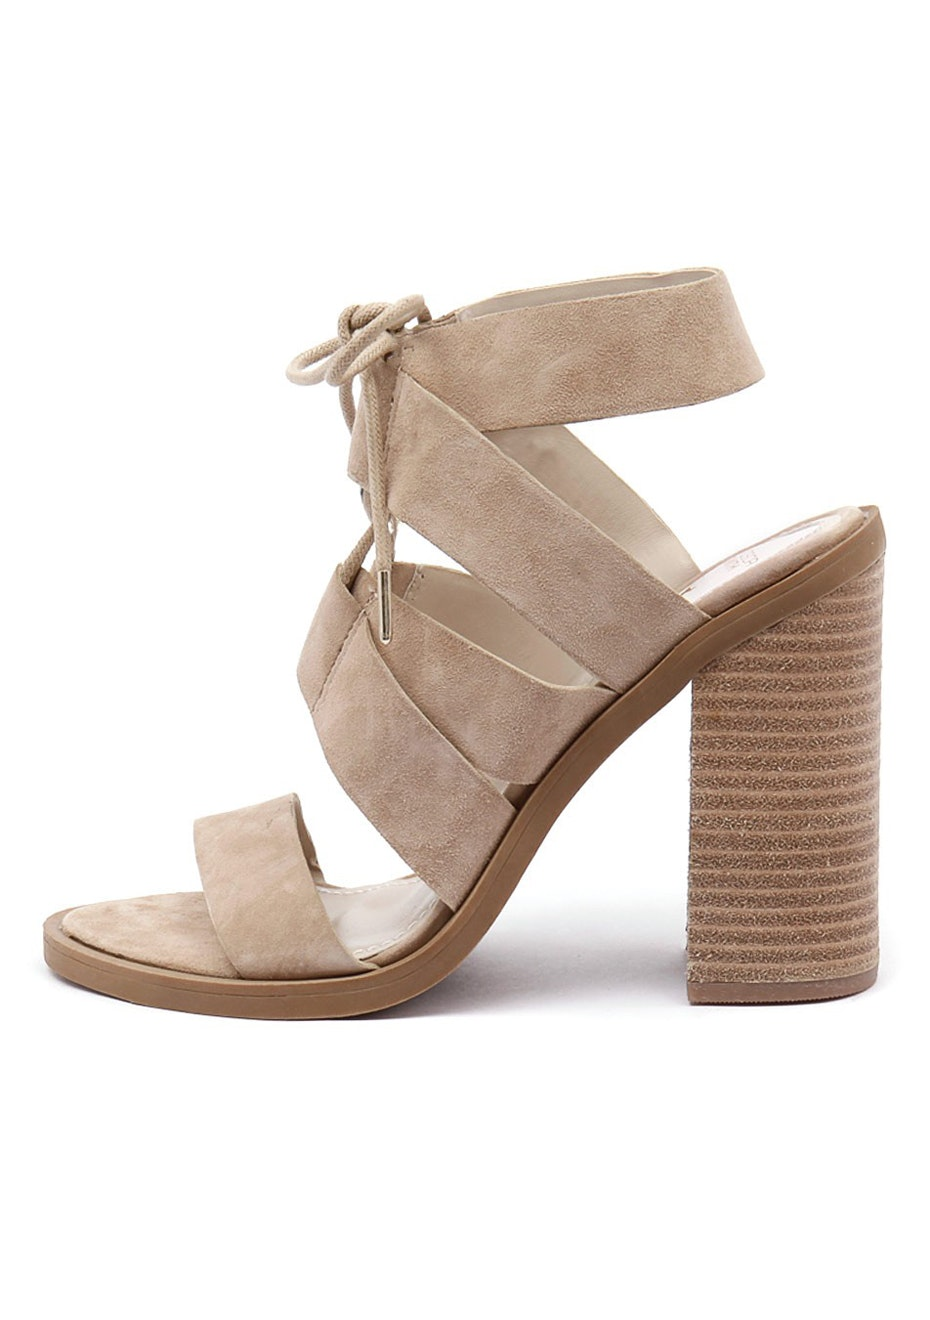 Windsor Smith - Tyra - Camel Suede